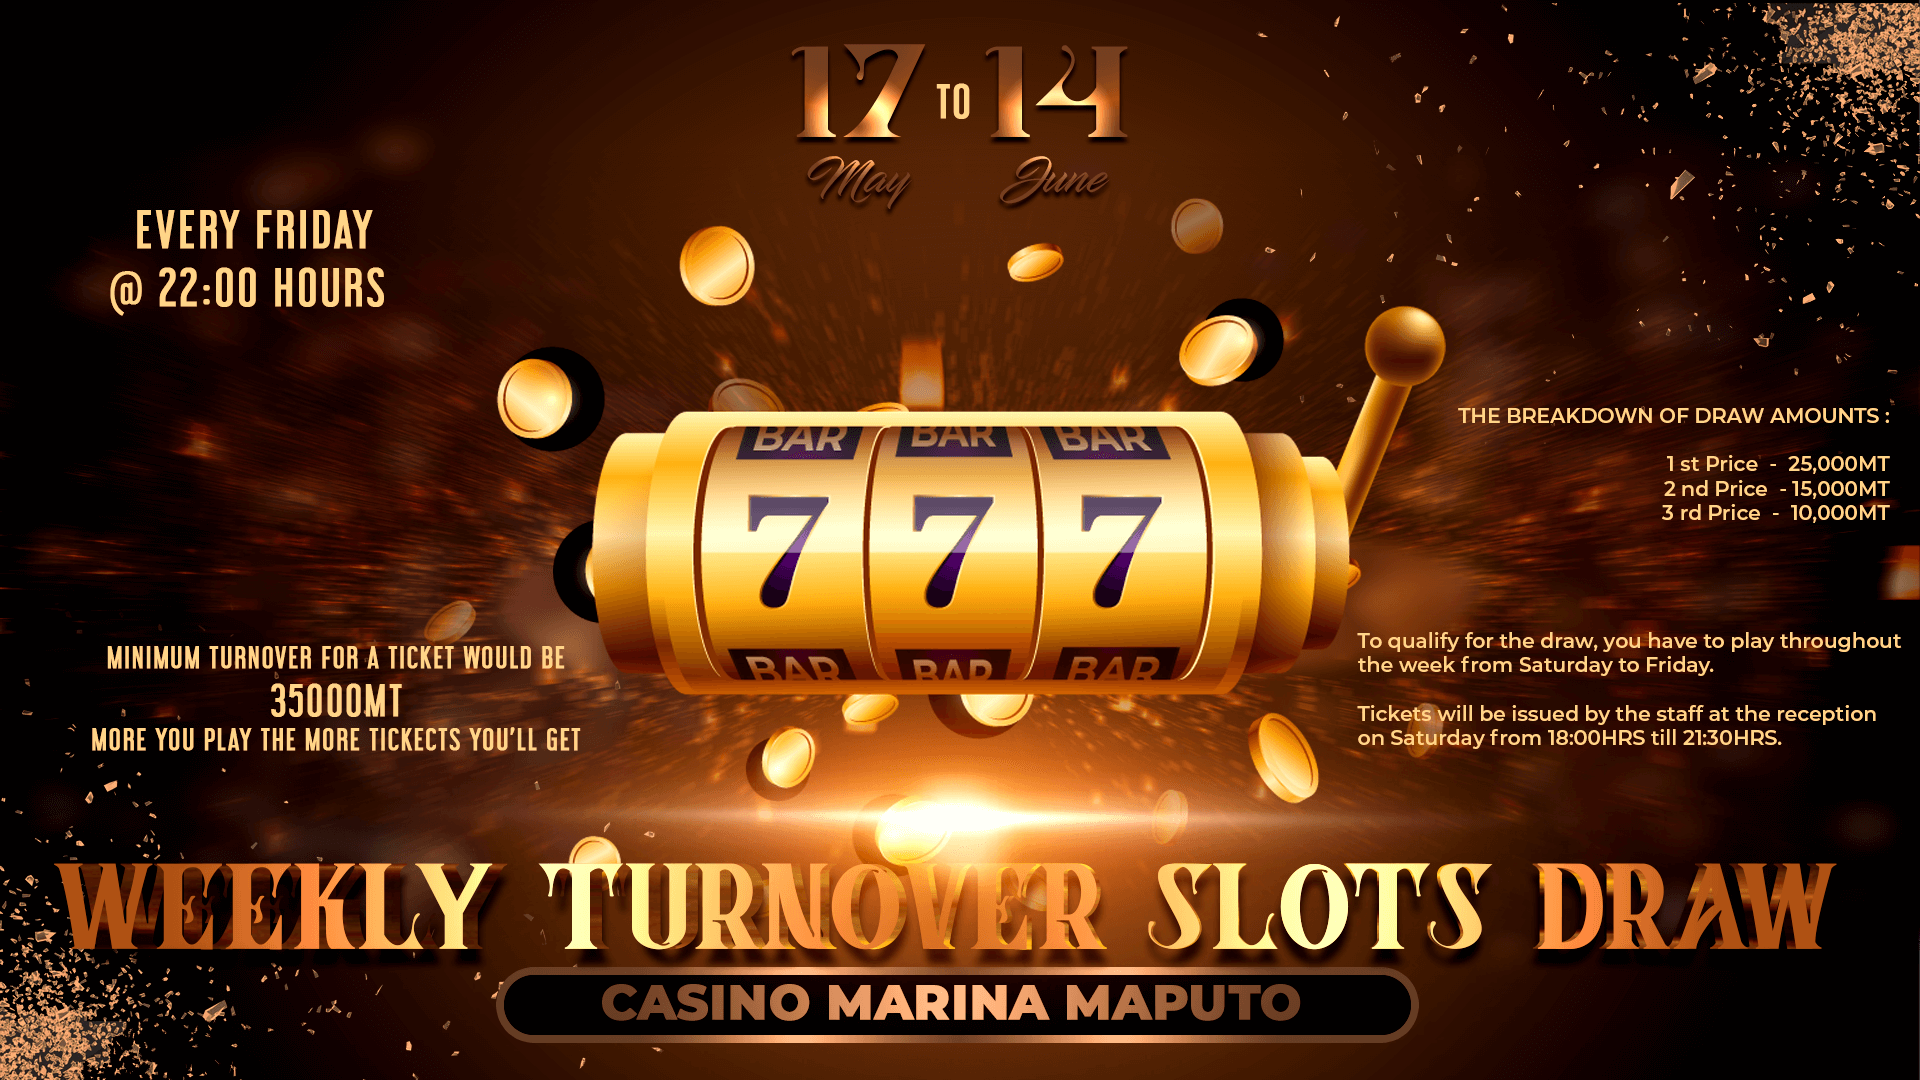 Weekly Turnover Slots Draw